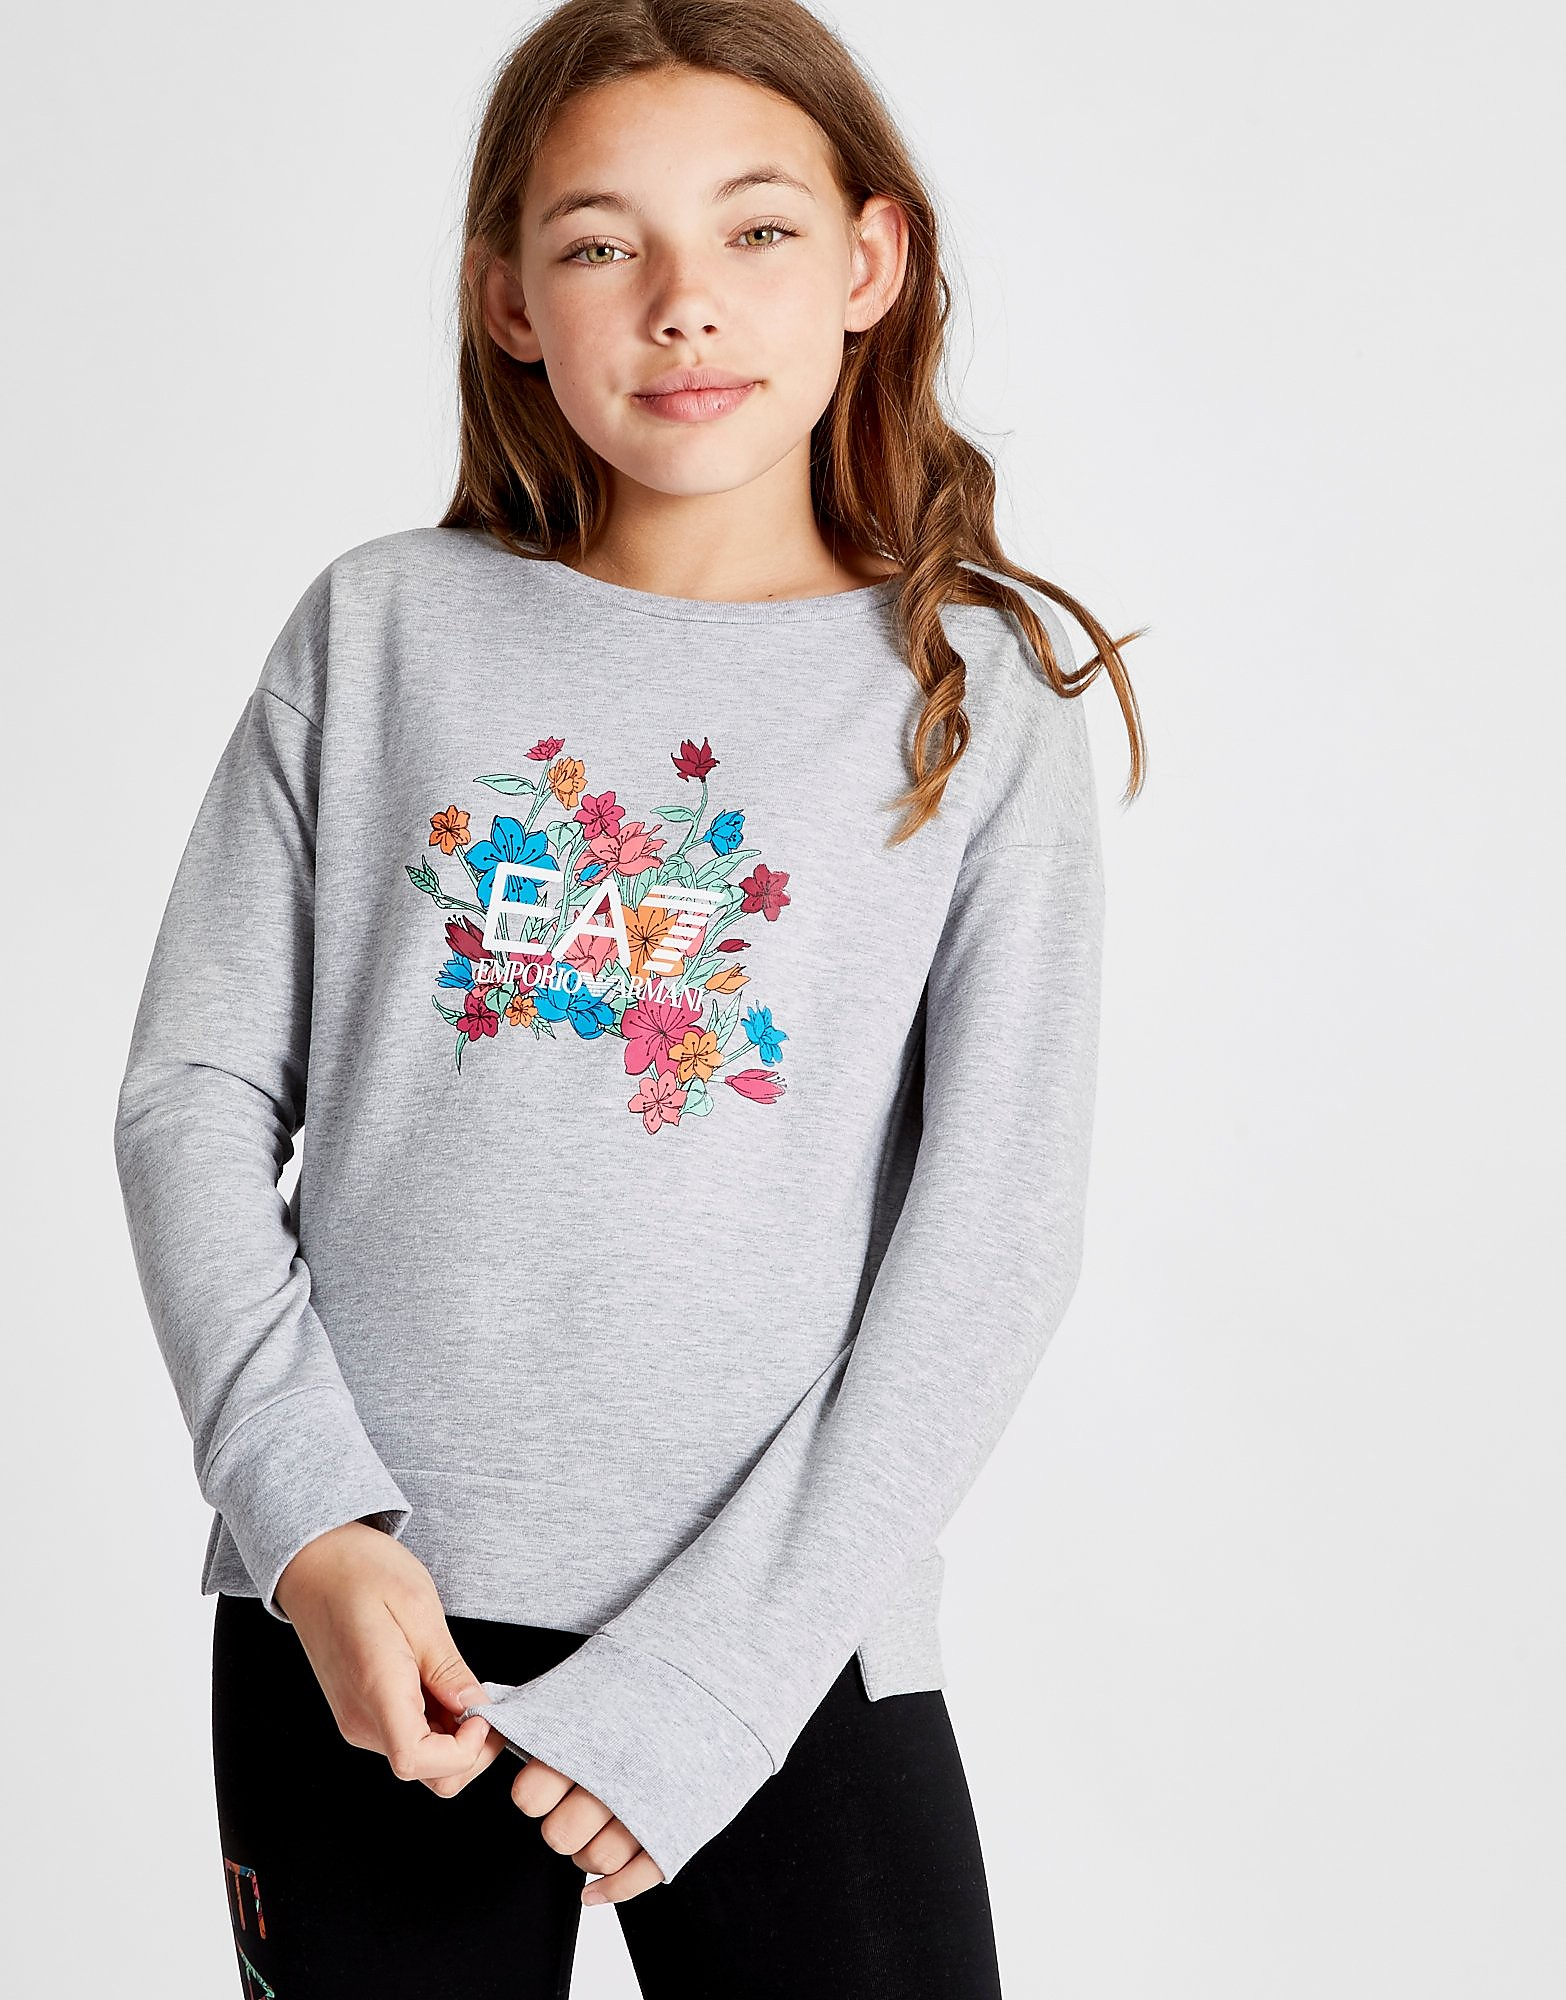 Emporio Armani EA7 Girls' Floral Fleece Crew Sweatshirt Junior - Grijs - Kind